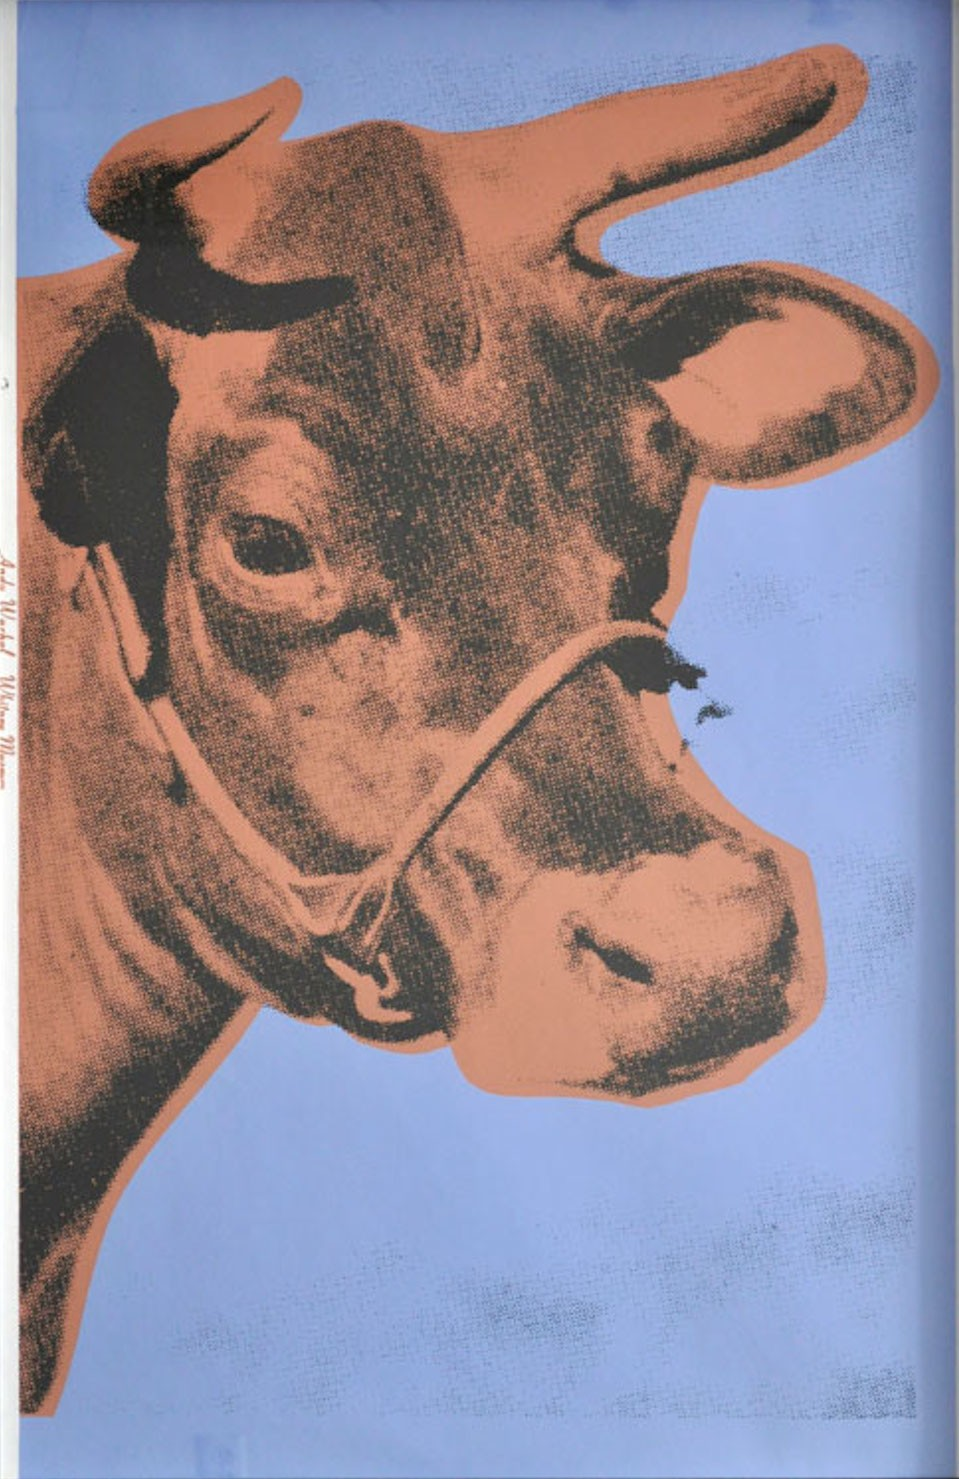 Cow FS II11A 1971 artwork by Andy Warhol - art listed for sale on Artplode